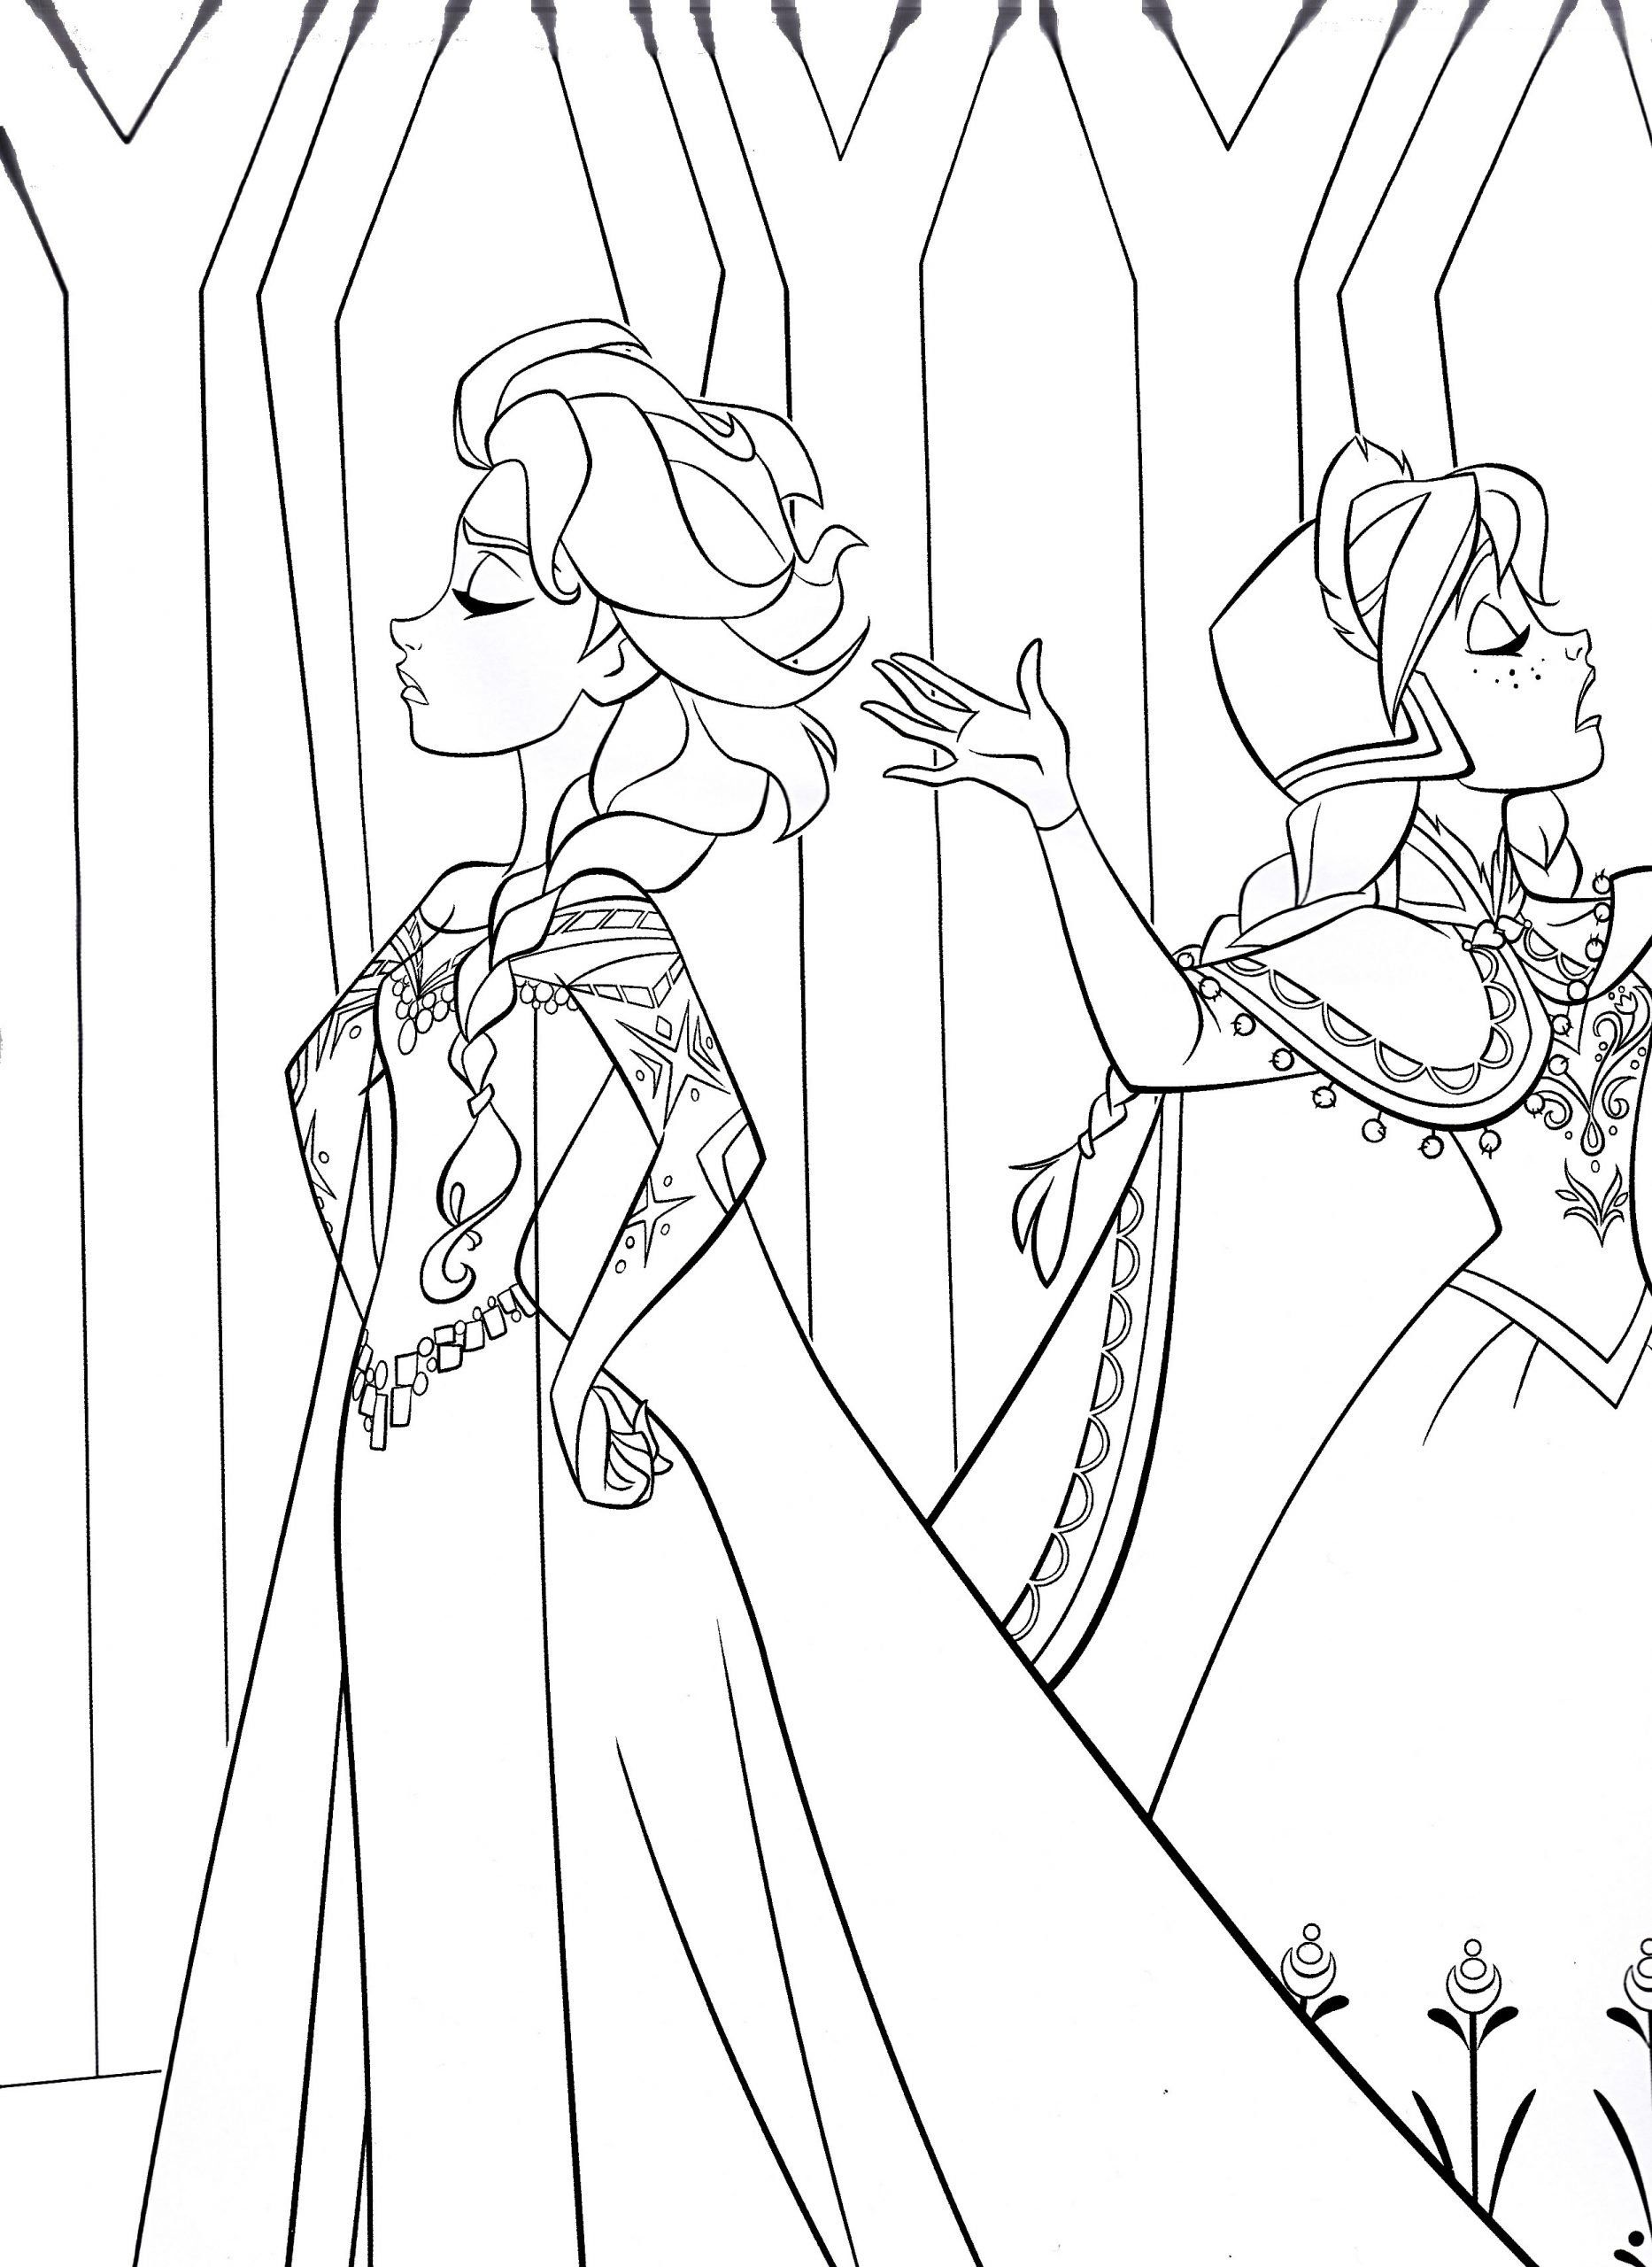 Anna From Frozen Coloring Pages Free Printable Frozen Coloring Pages For Kids Best Frozen Coloring Pages Elsa Coloring Pages Frozen Coloring